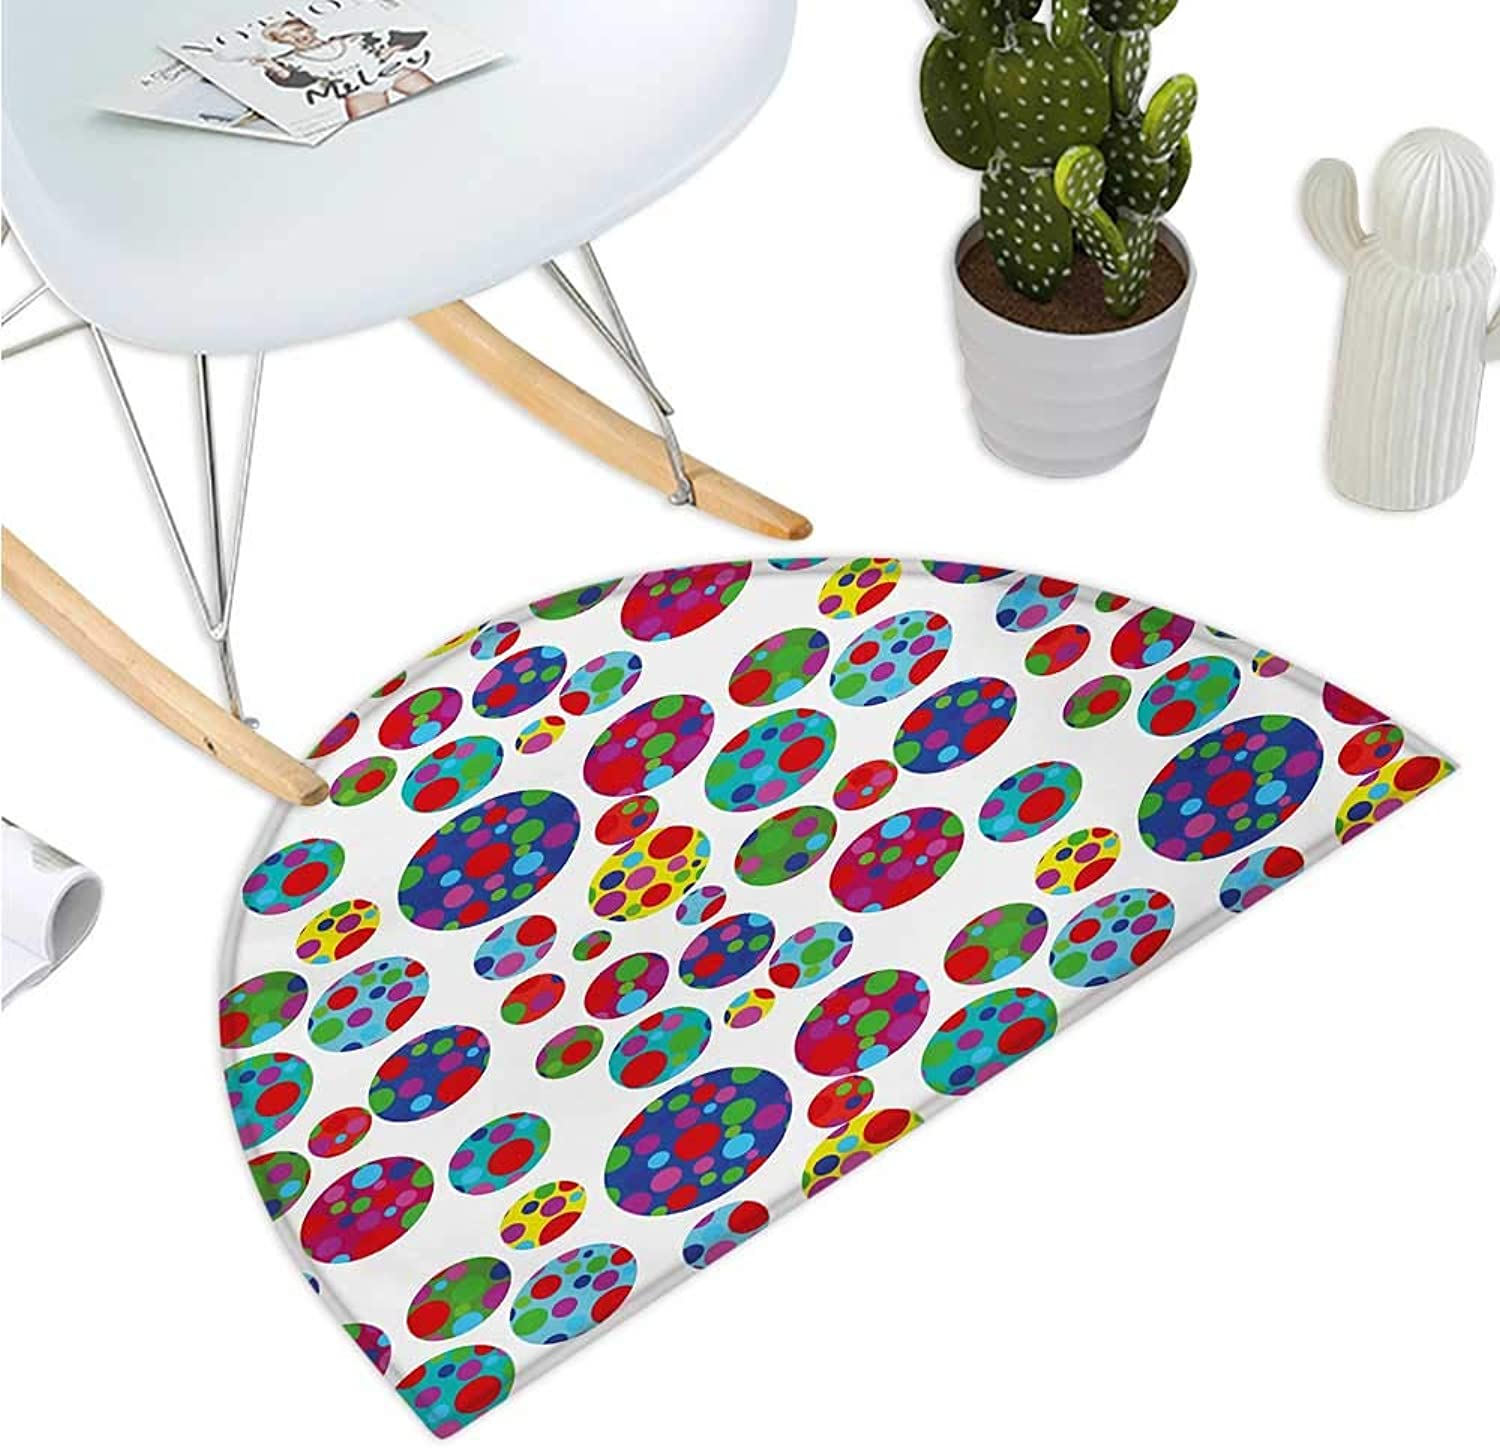 colorful Half Round Door mats colord Big and Little Dotted Dots Repeating Pattern Funky Graphic Illustration Entry Door Mat H 39.3  xD 59  Multicolor